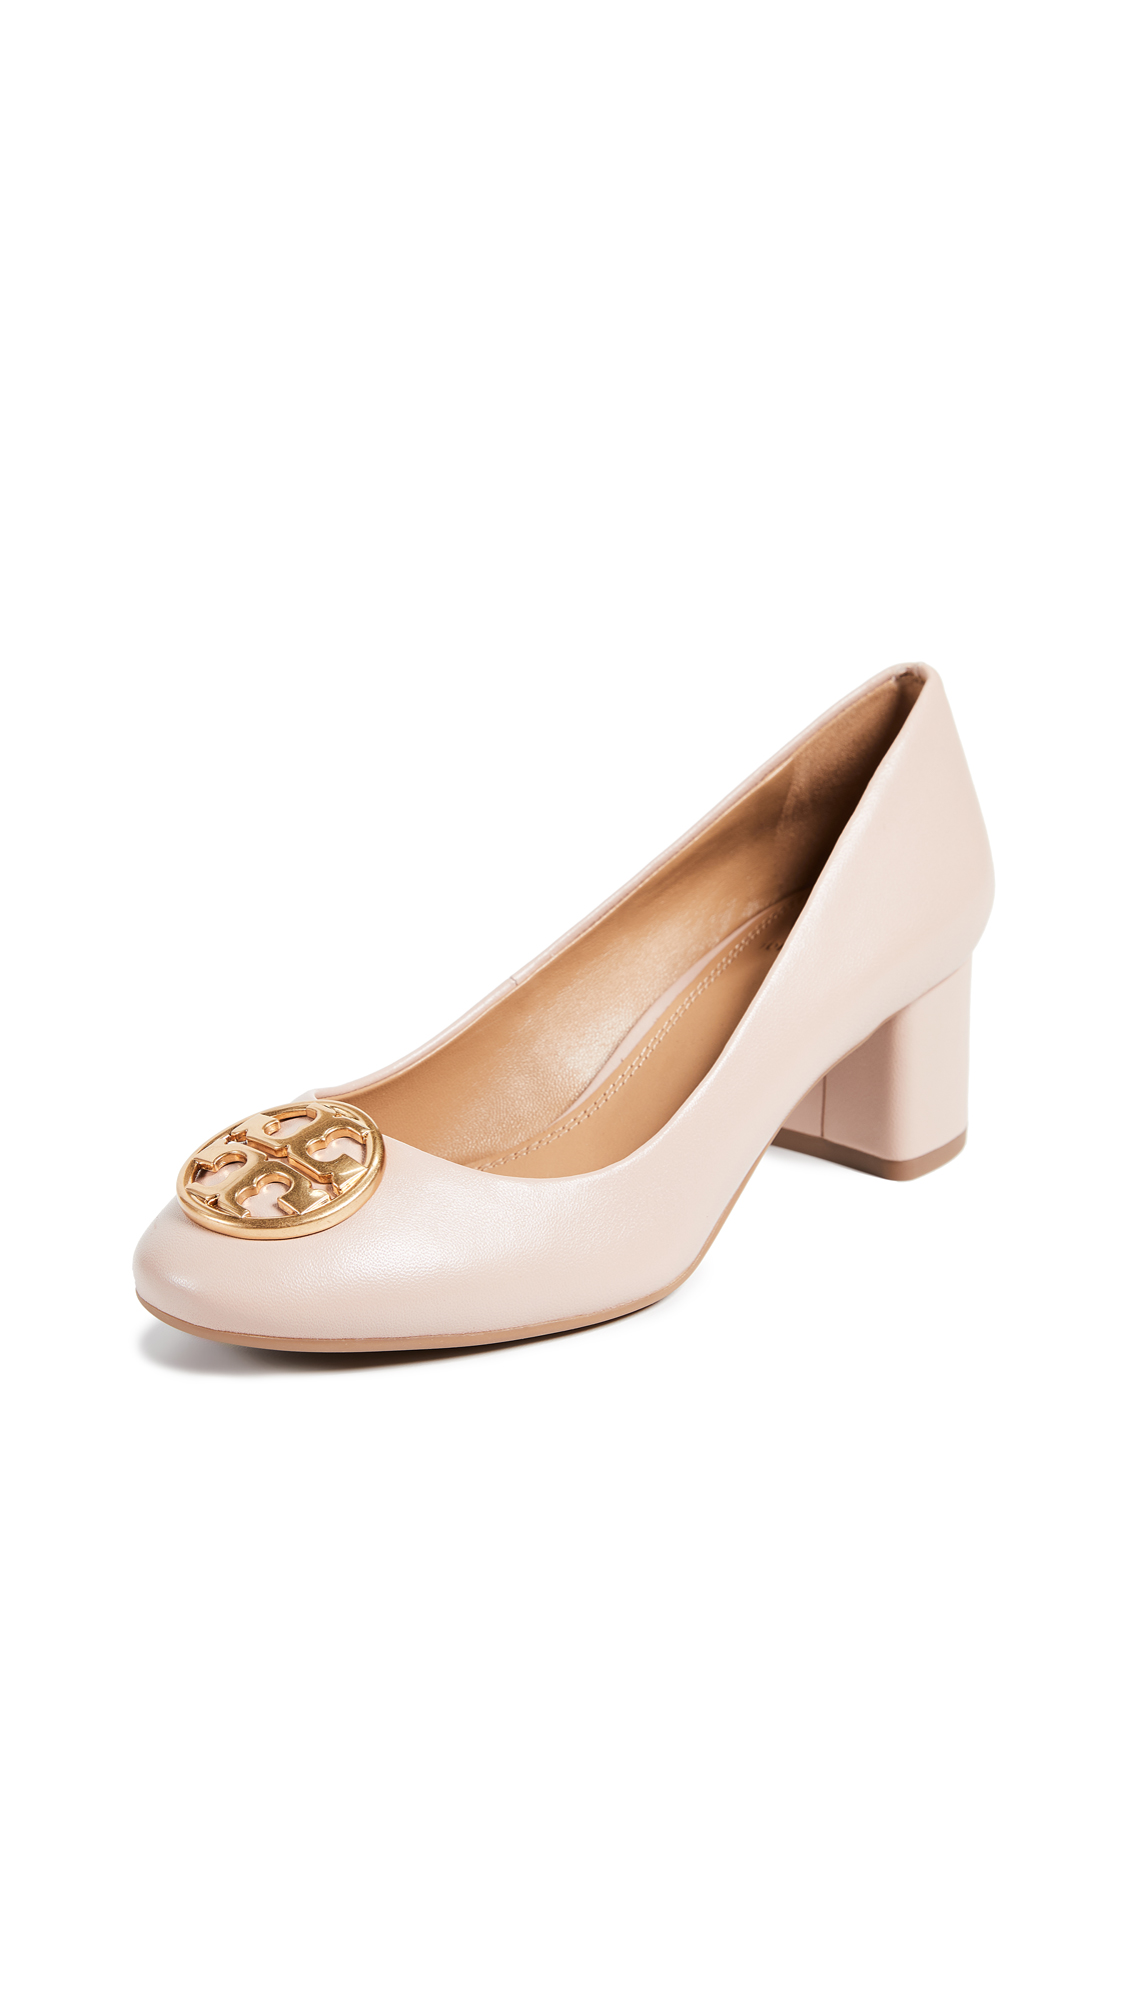 Tory Burch Chelsea 50mm Pumps - Goan Sand